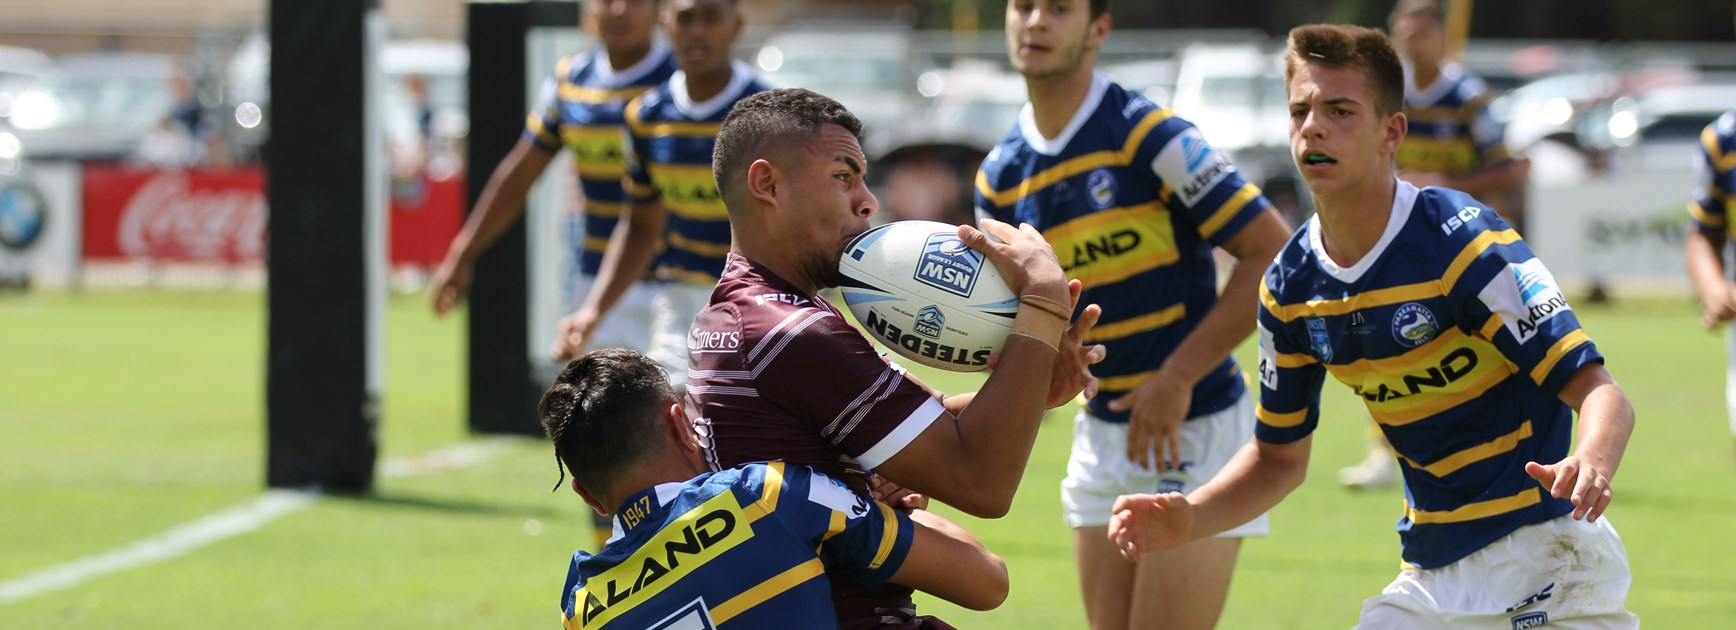 Manly gallant in 14-10 loss to Eels